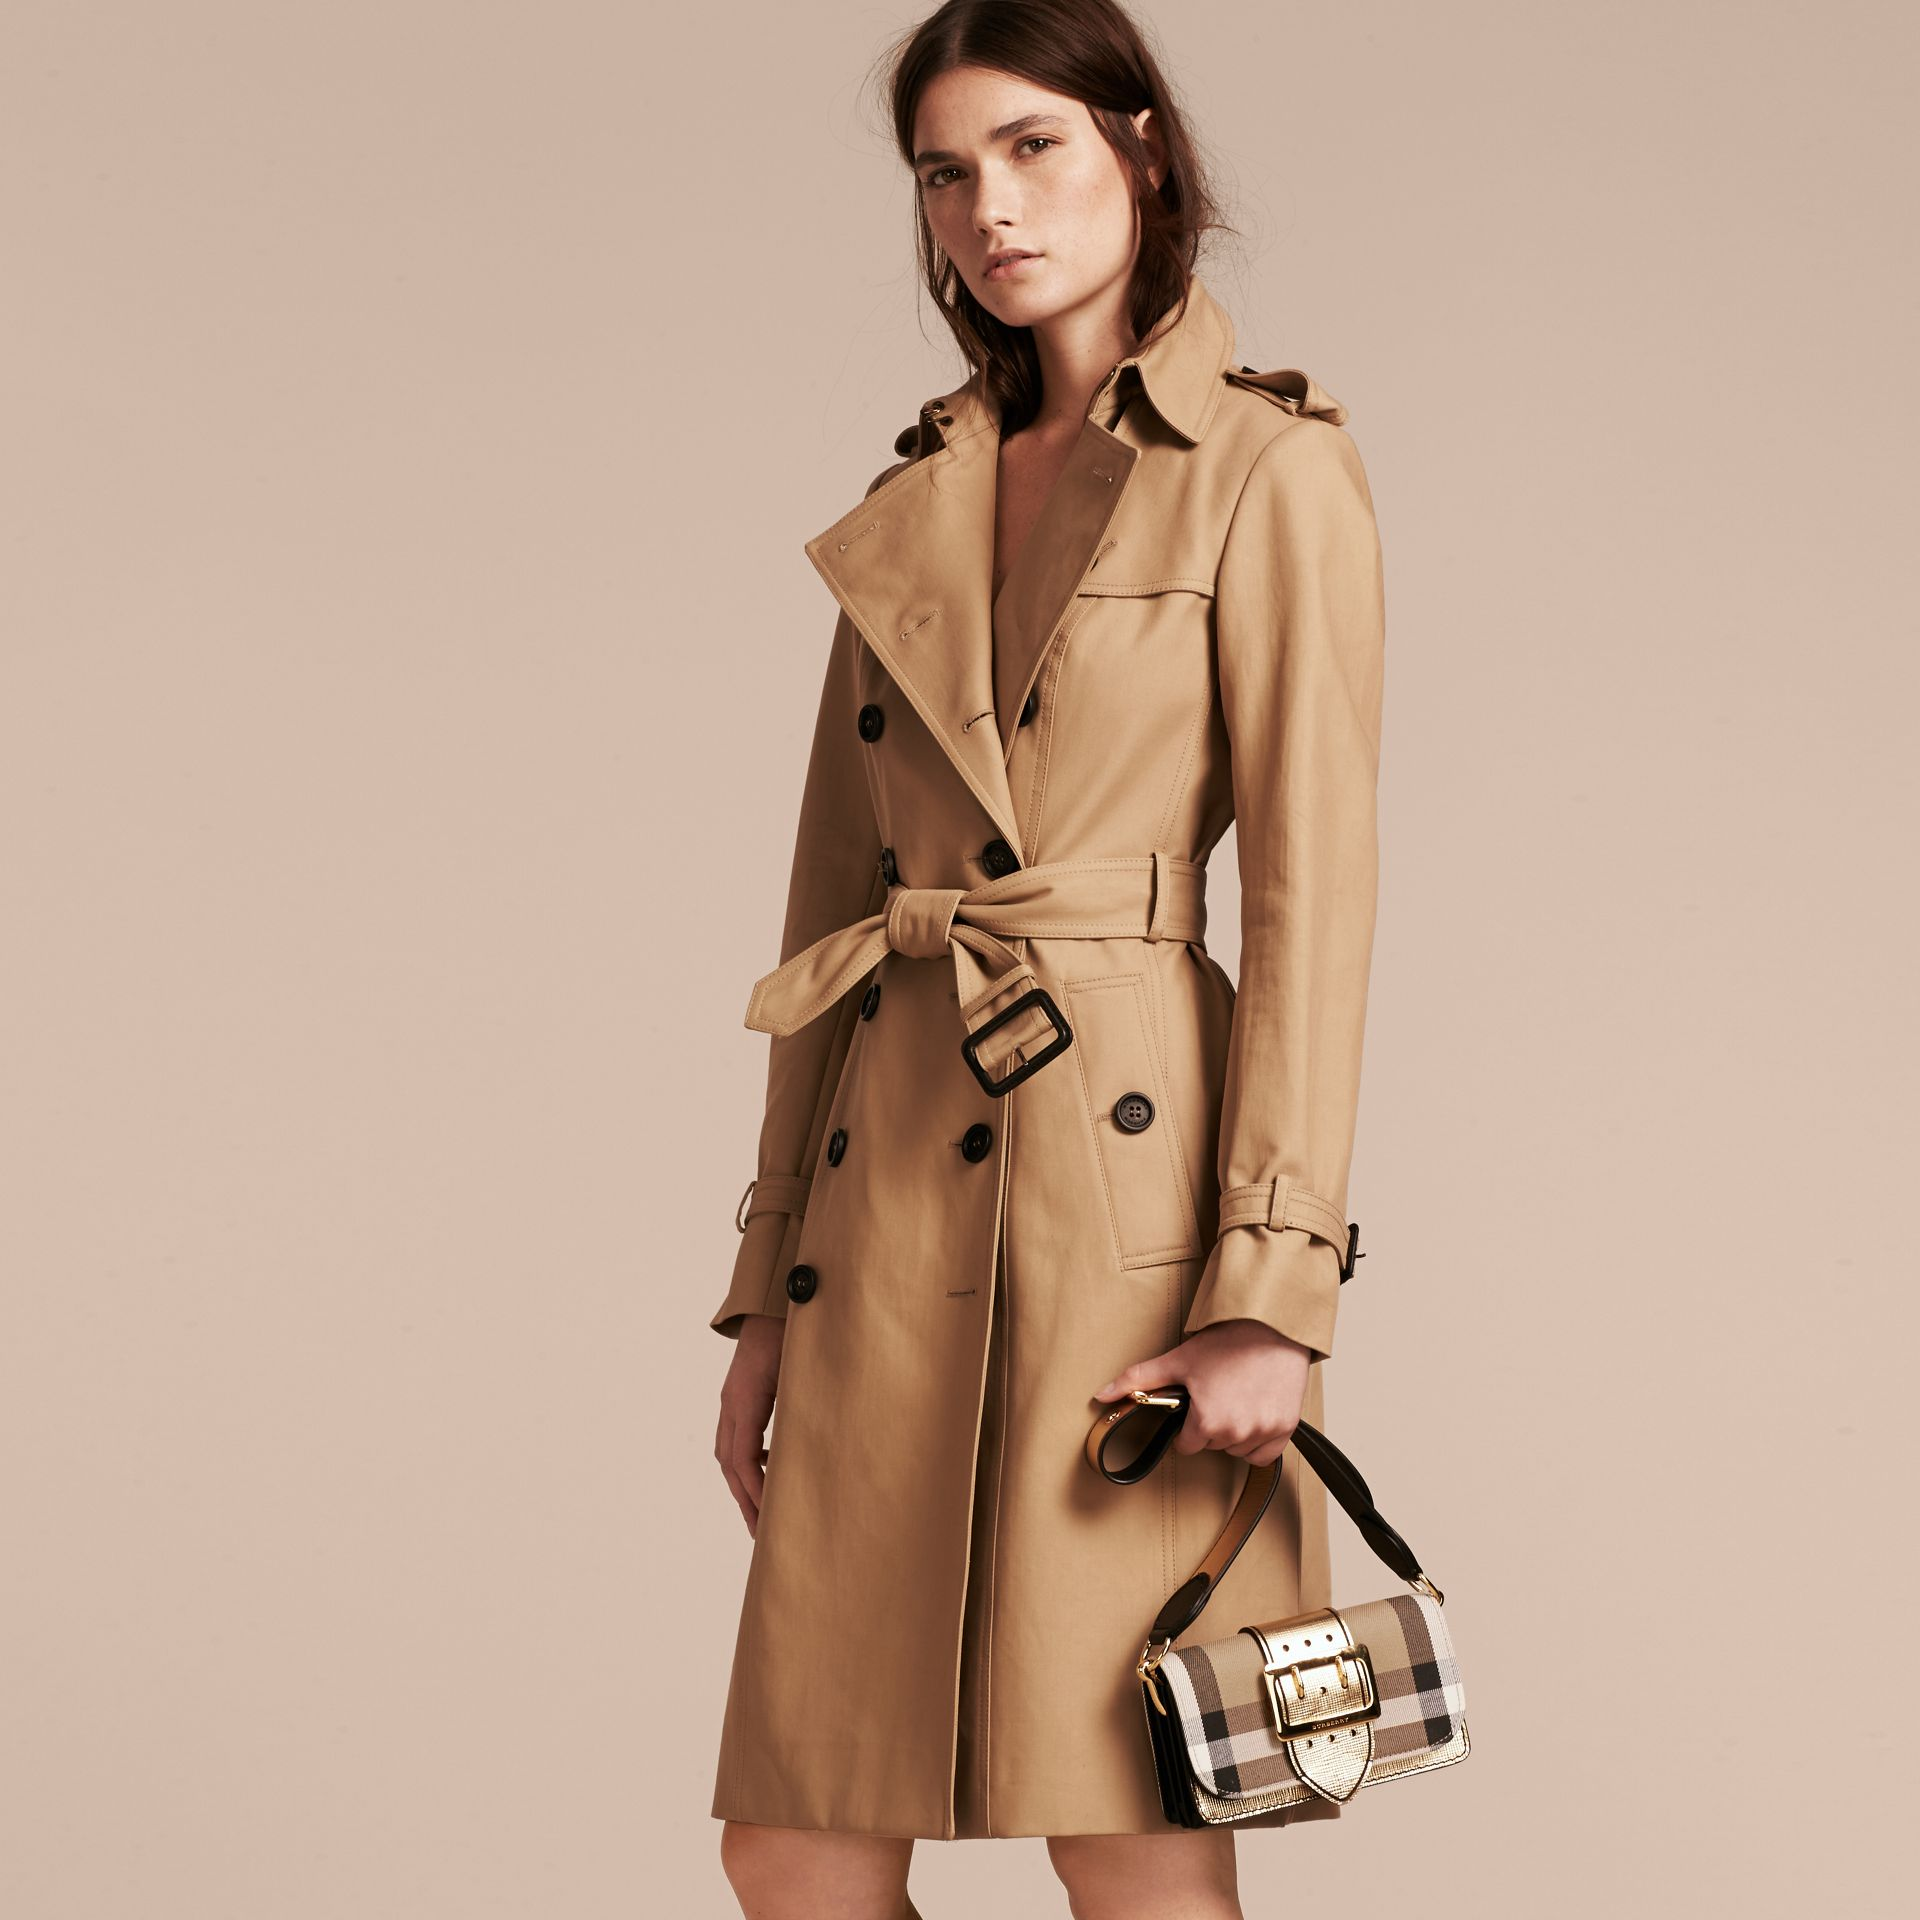 The Small Buckle Bag in House Check and Leather in Gold - Women | Burberry United Kingdom - gallery image 7